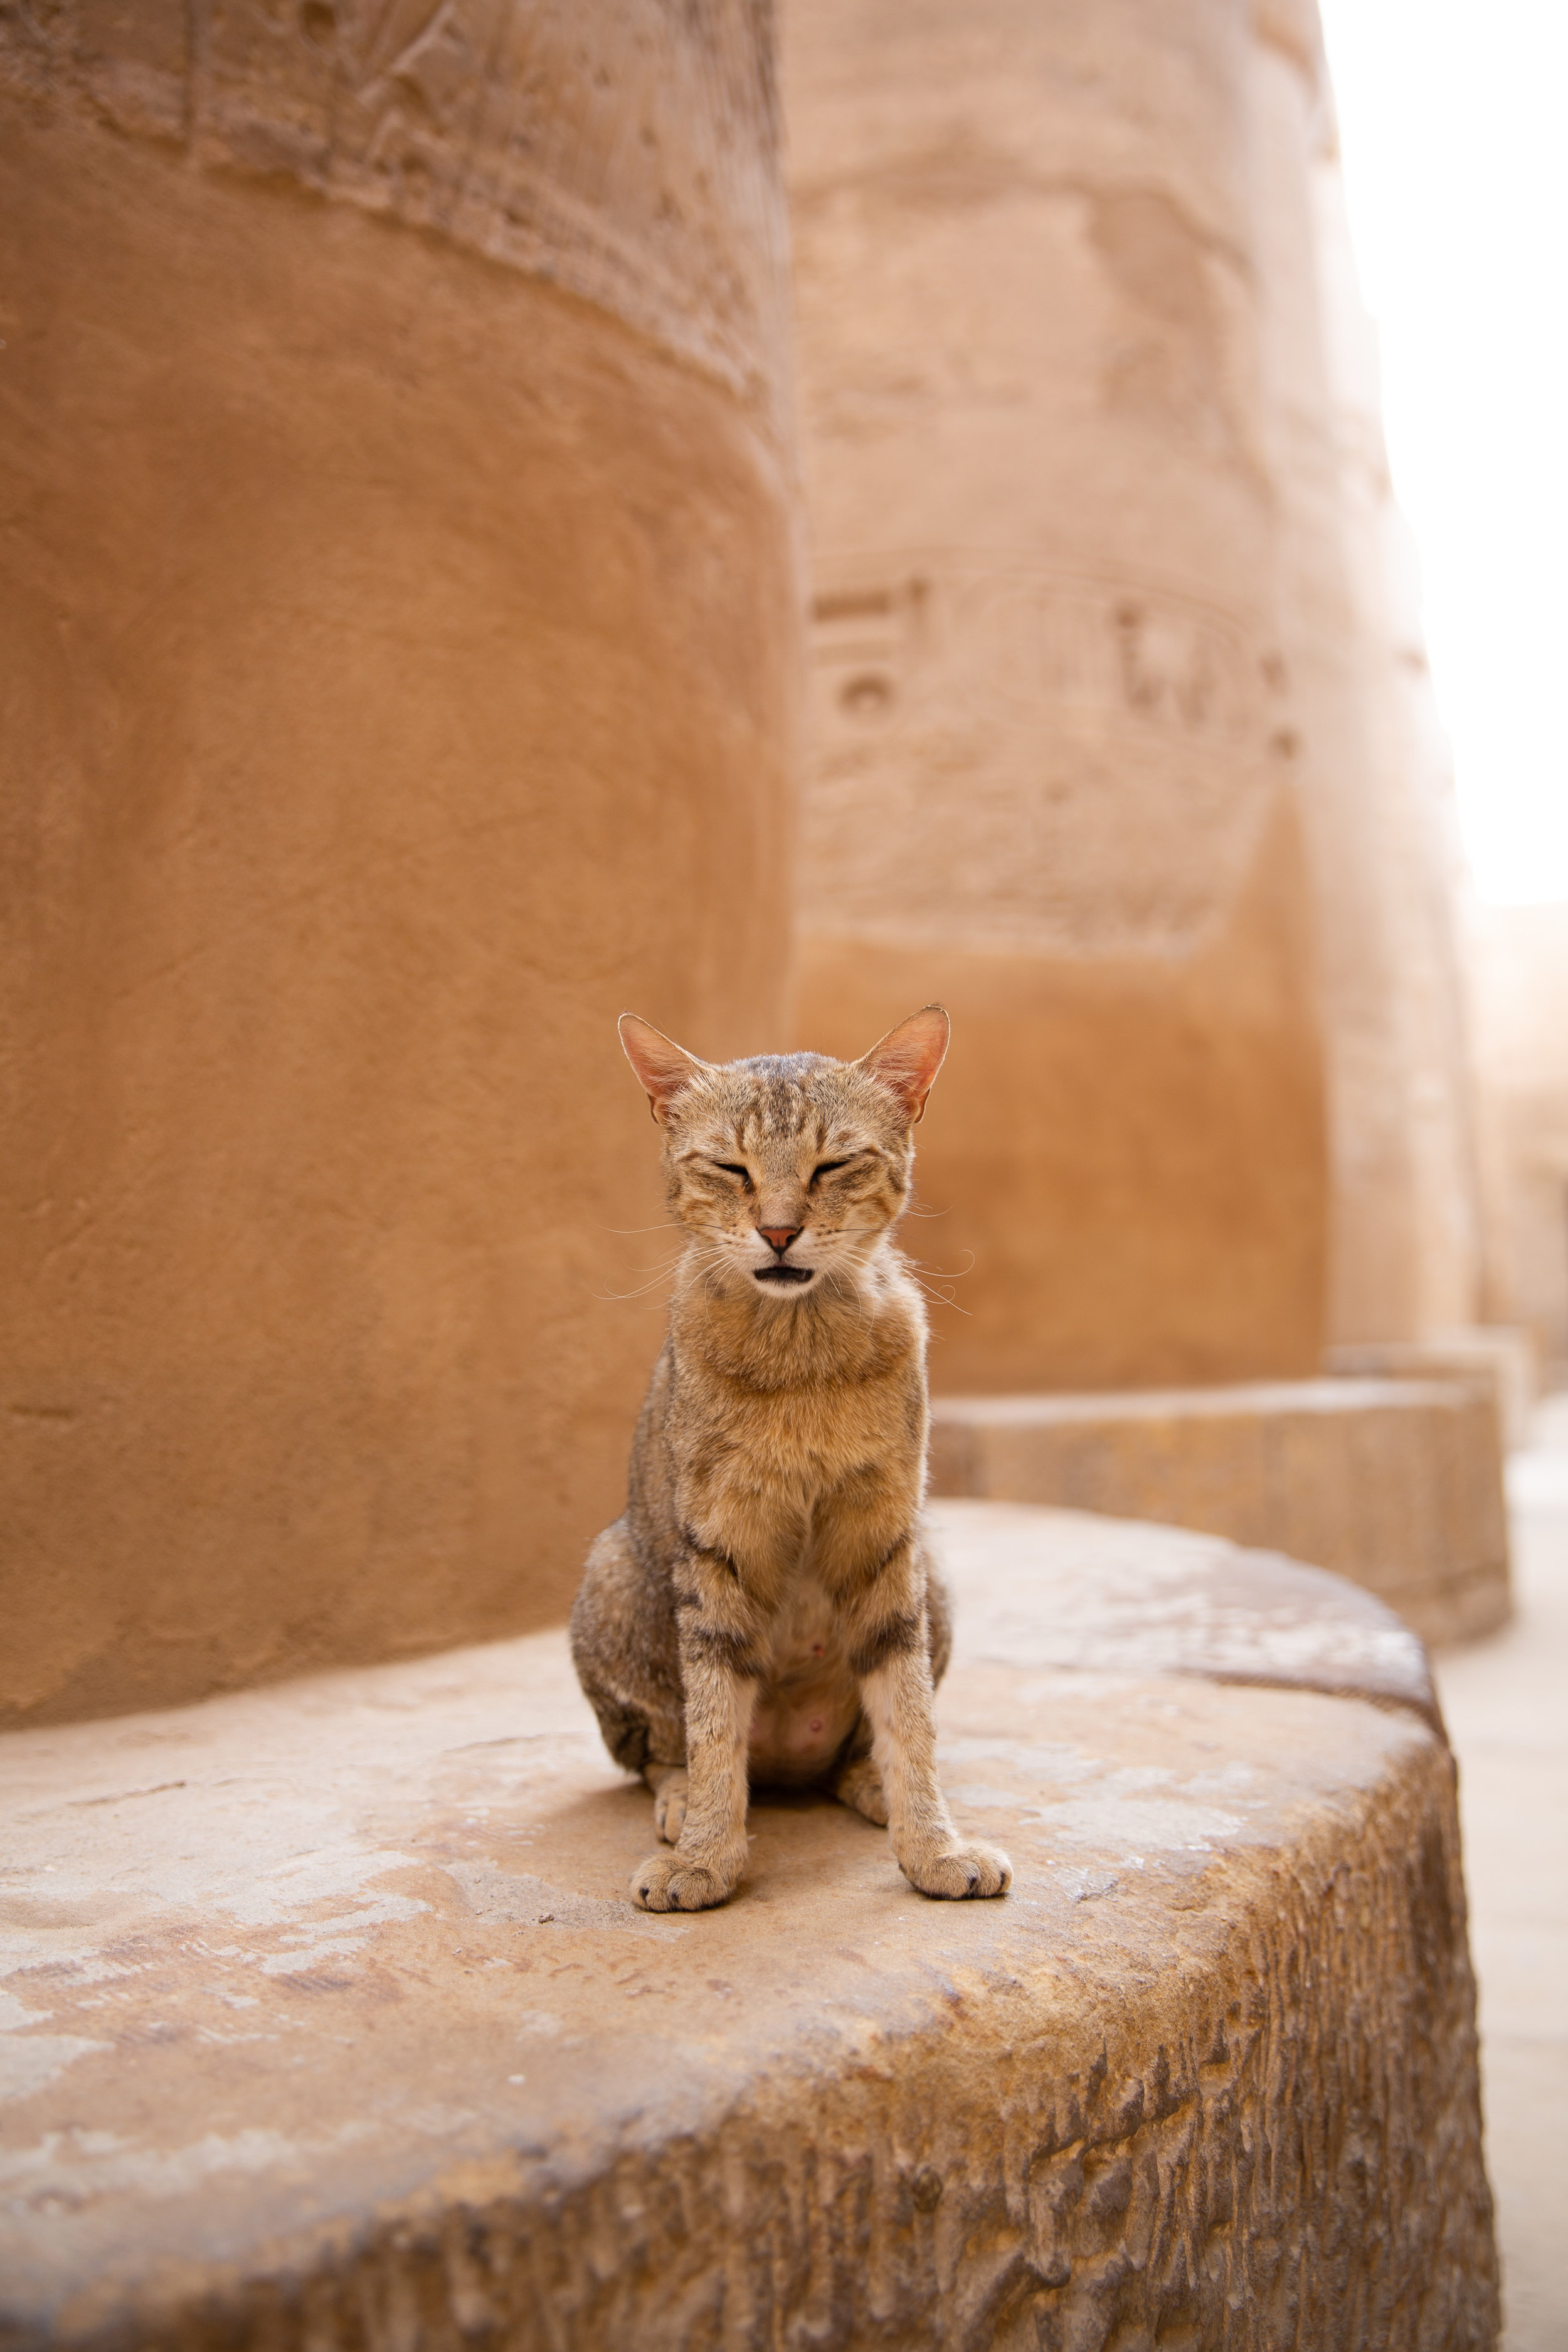 Cat at Karnak Temple, Luxor - Egypt - Wild Earth Expeditions